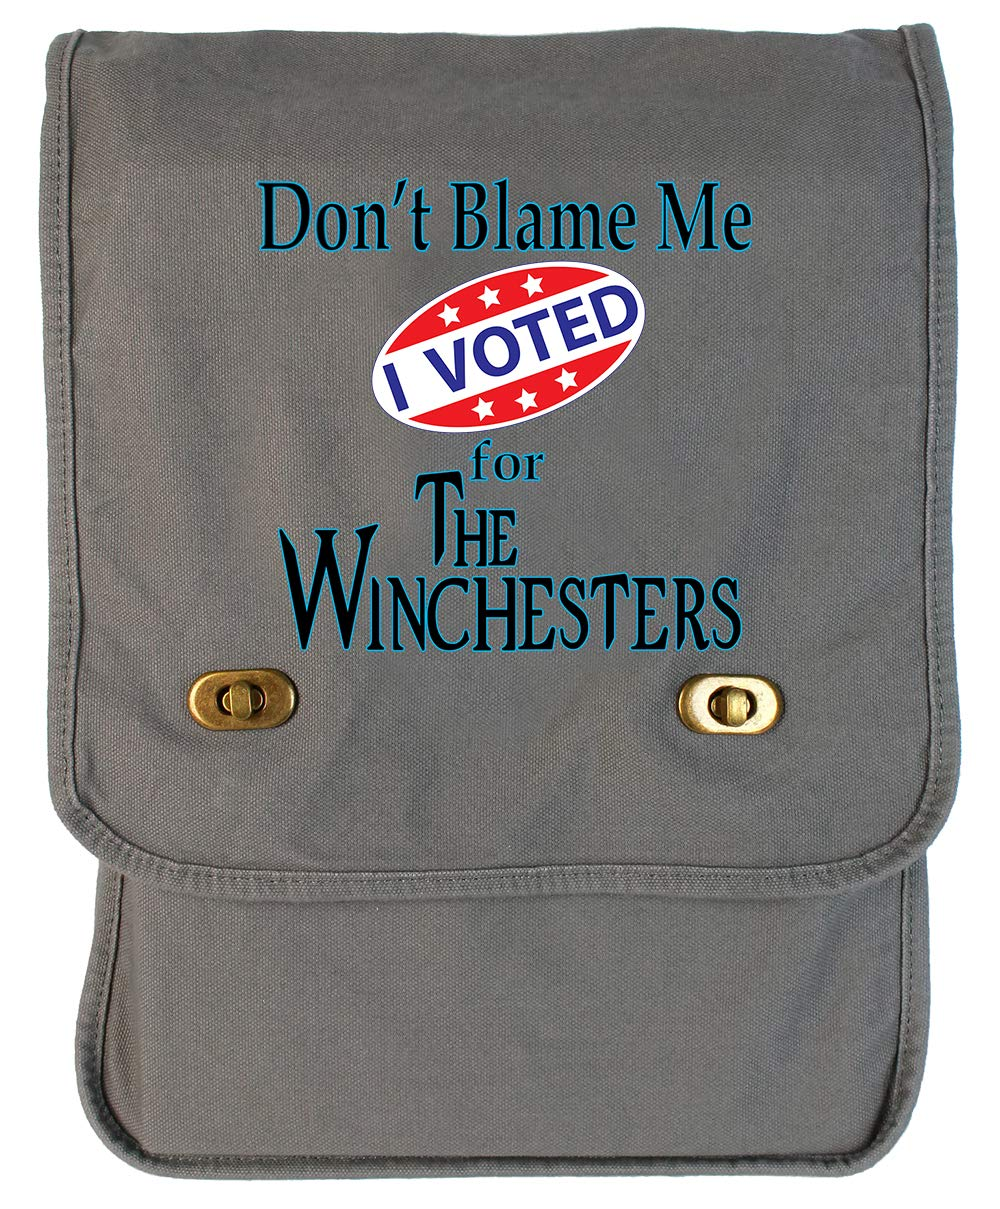 Tenacitee Voted for The Winchesters Khaki Green Raw Edge Canvas Messenger Bag